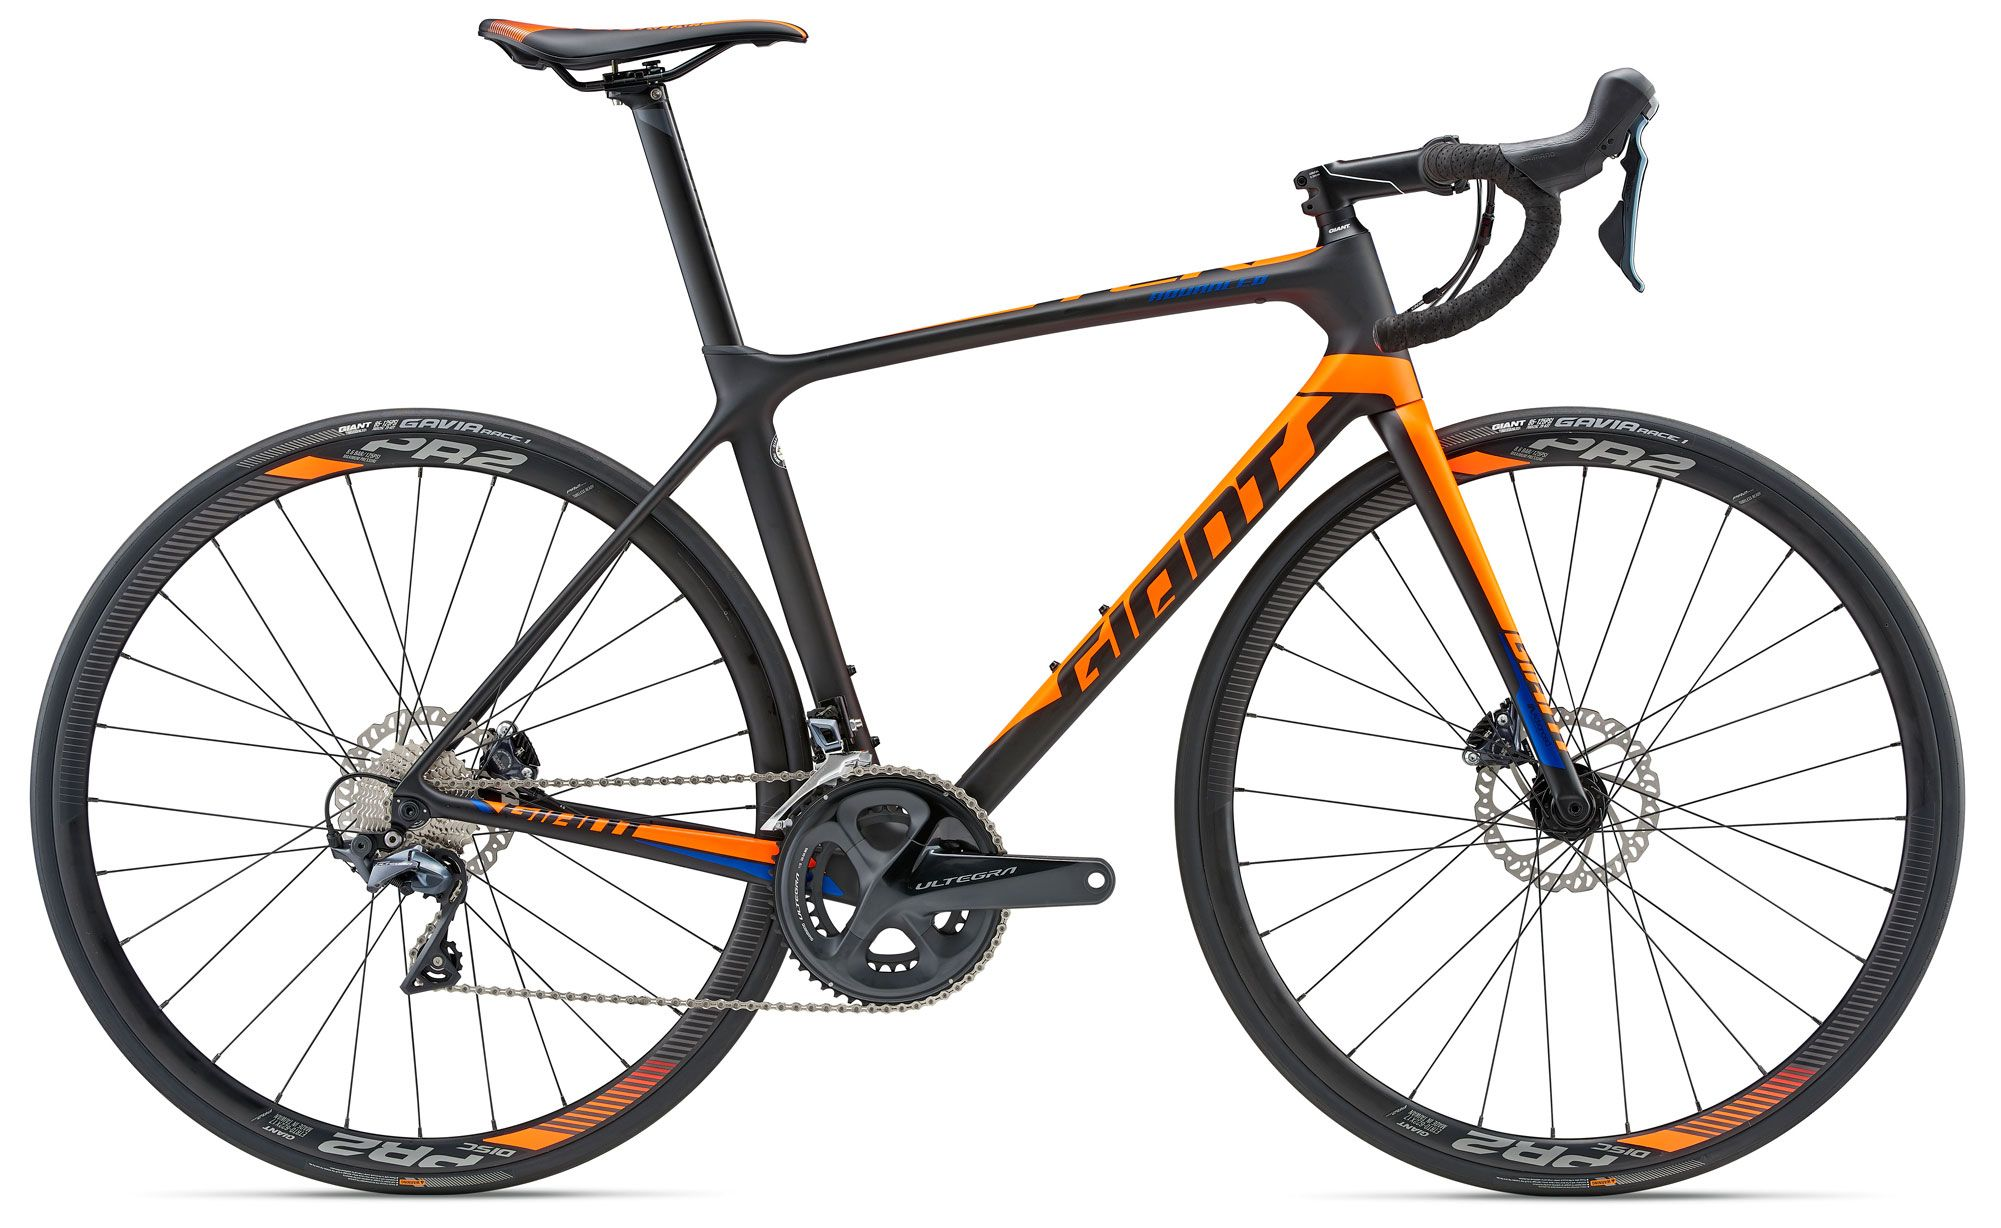 Велосипед Giant TCR Advanced 1 Disc 2018 велосипед giant tcr advanced sl 2 2017